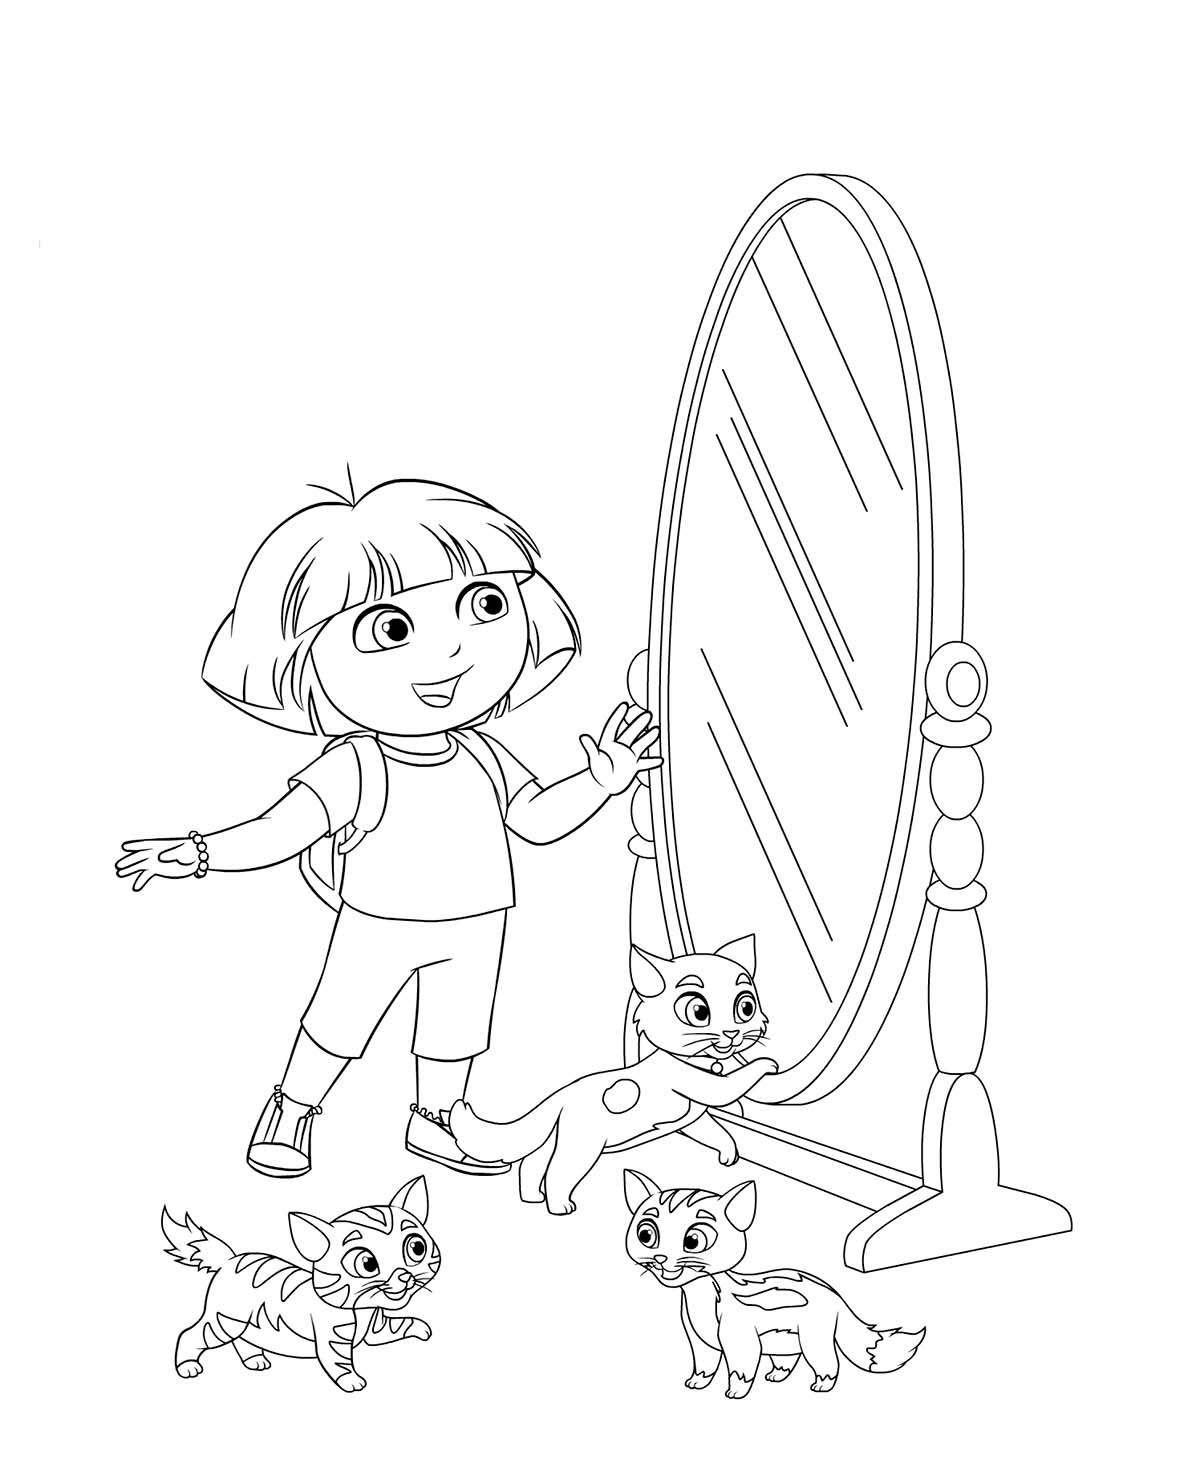 Mirror coloring pages to download